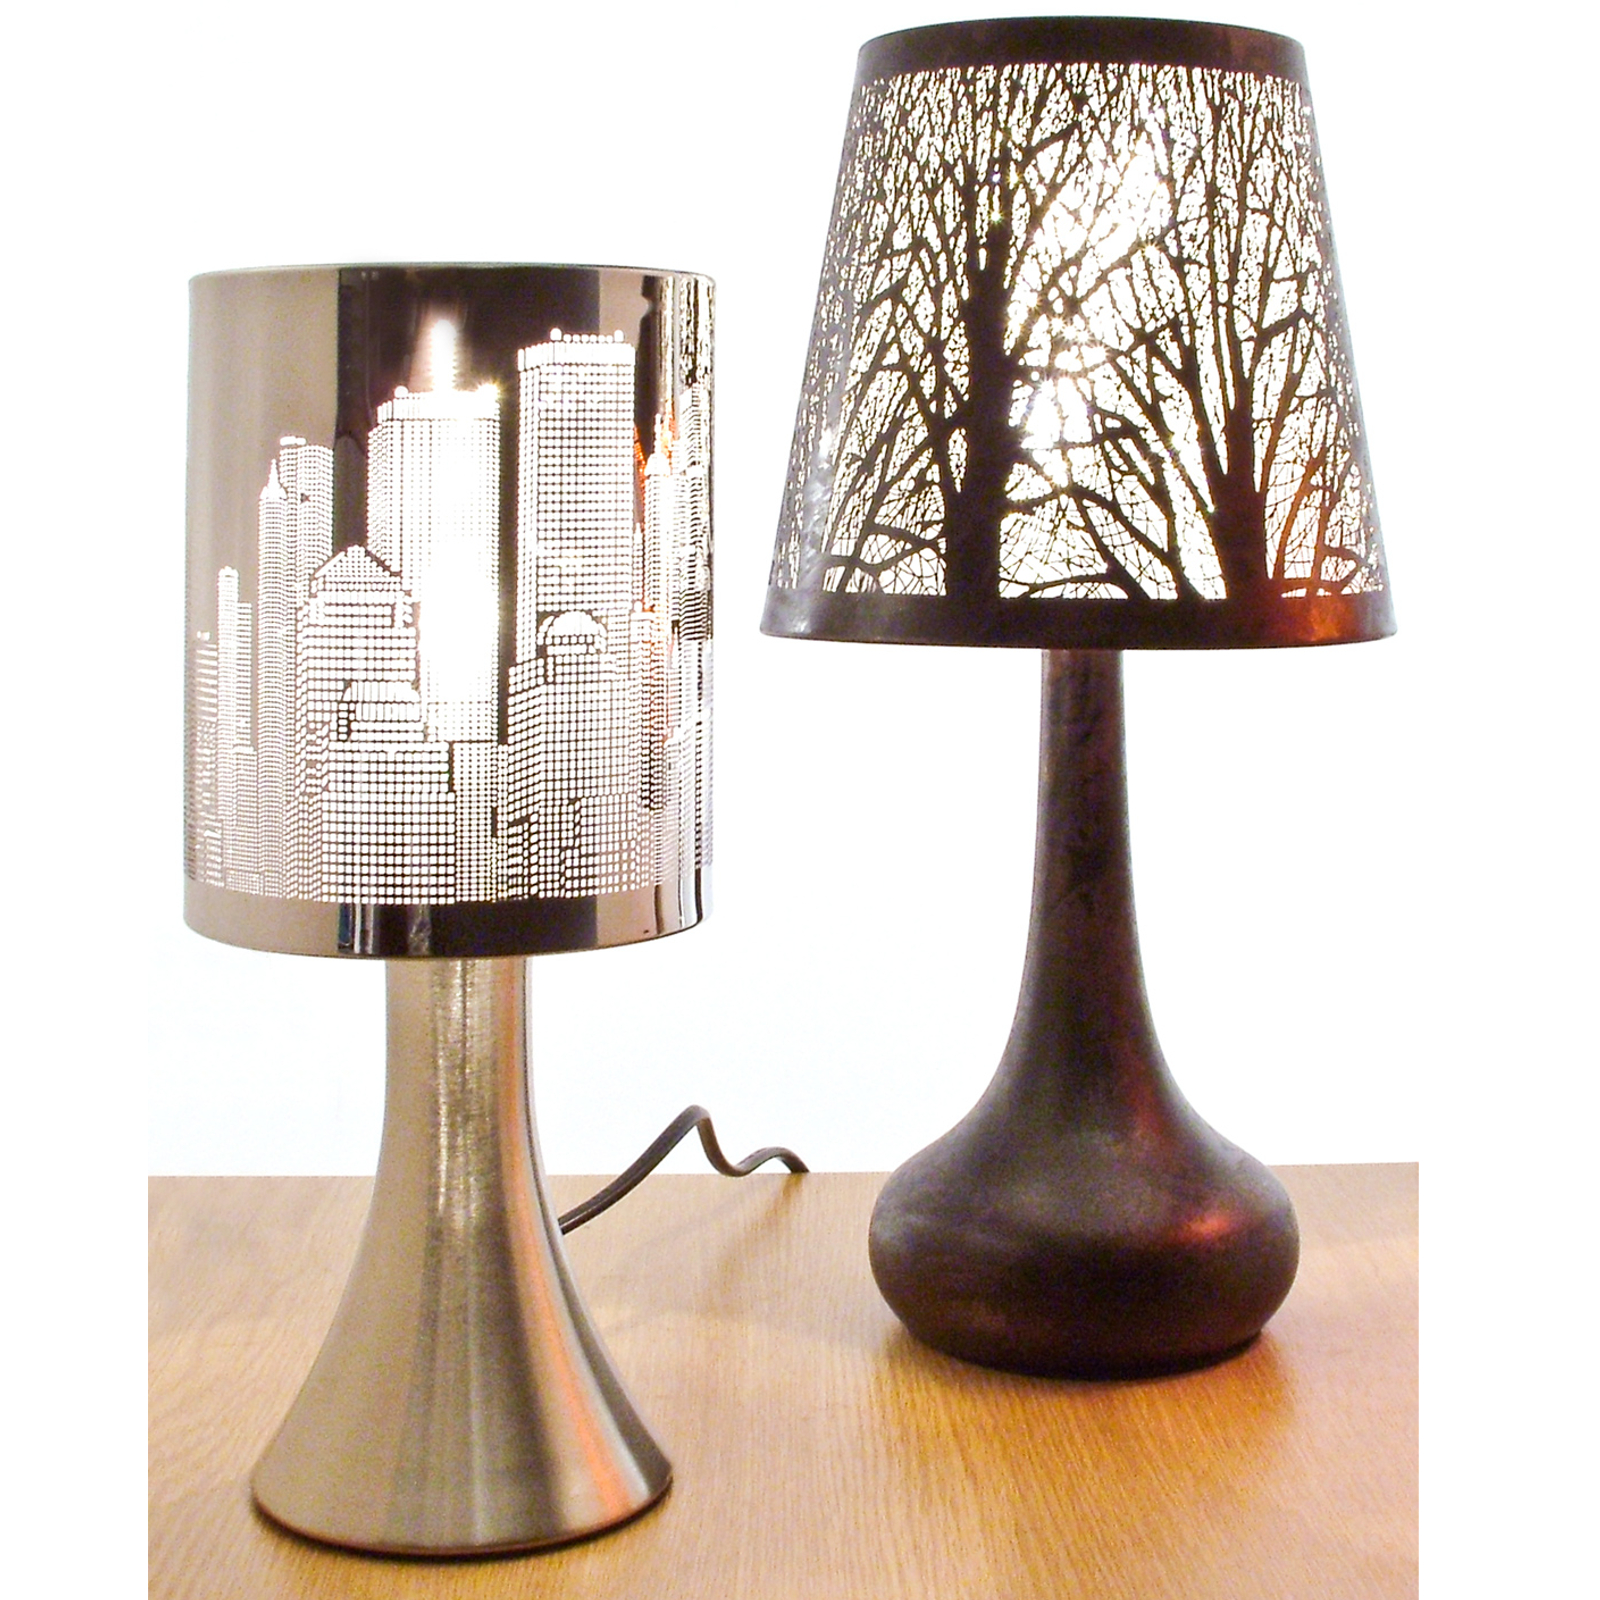 Bedside Lamp With Dimmer Switch Chrome Touch Lamp Dimmer Bedside Table Light New York City